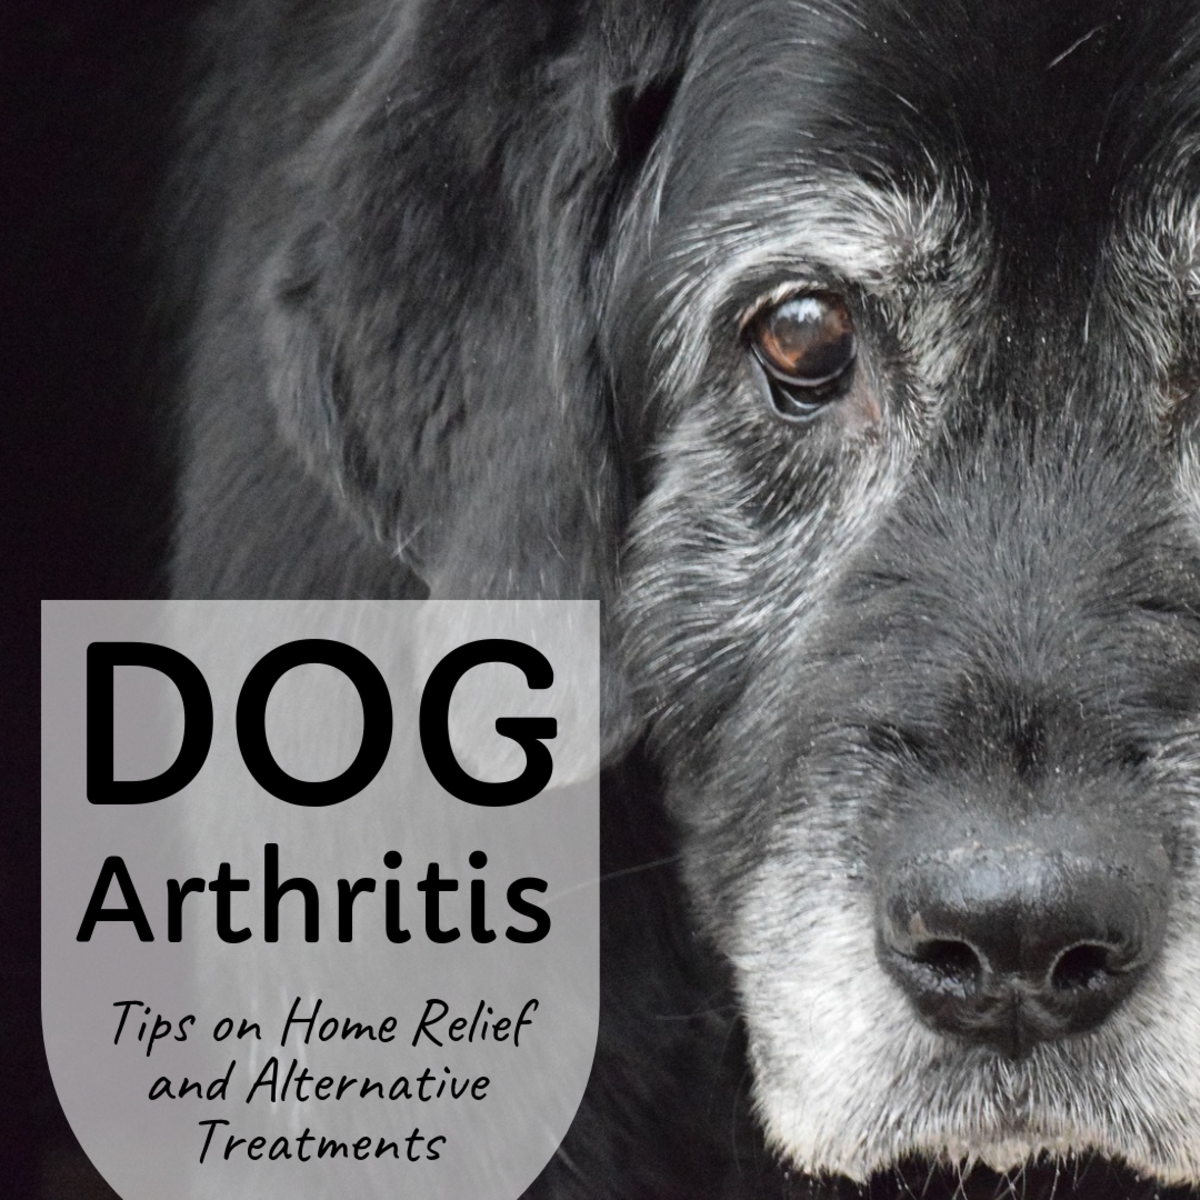 Learn how to help provide your dog with relief from arthritis, and discover some alternative treatment options to discuss with your vet.